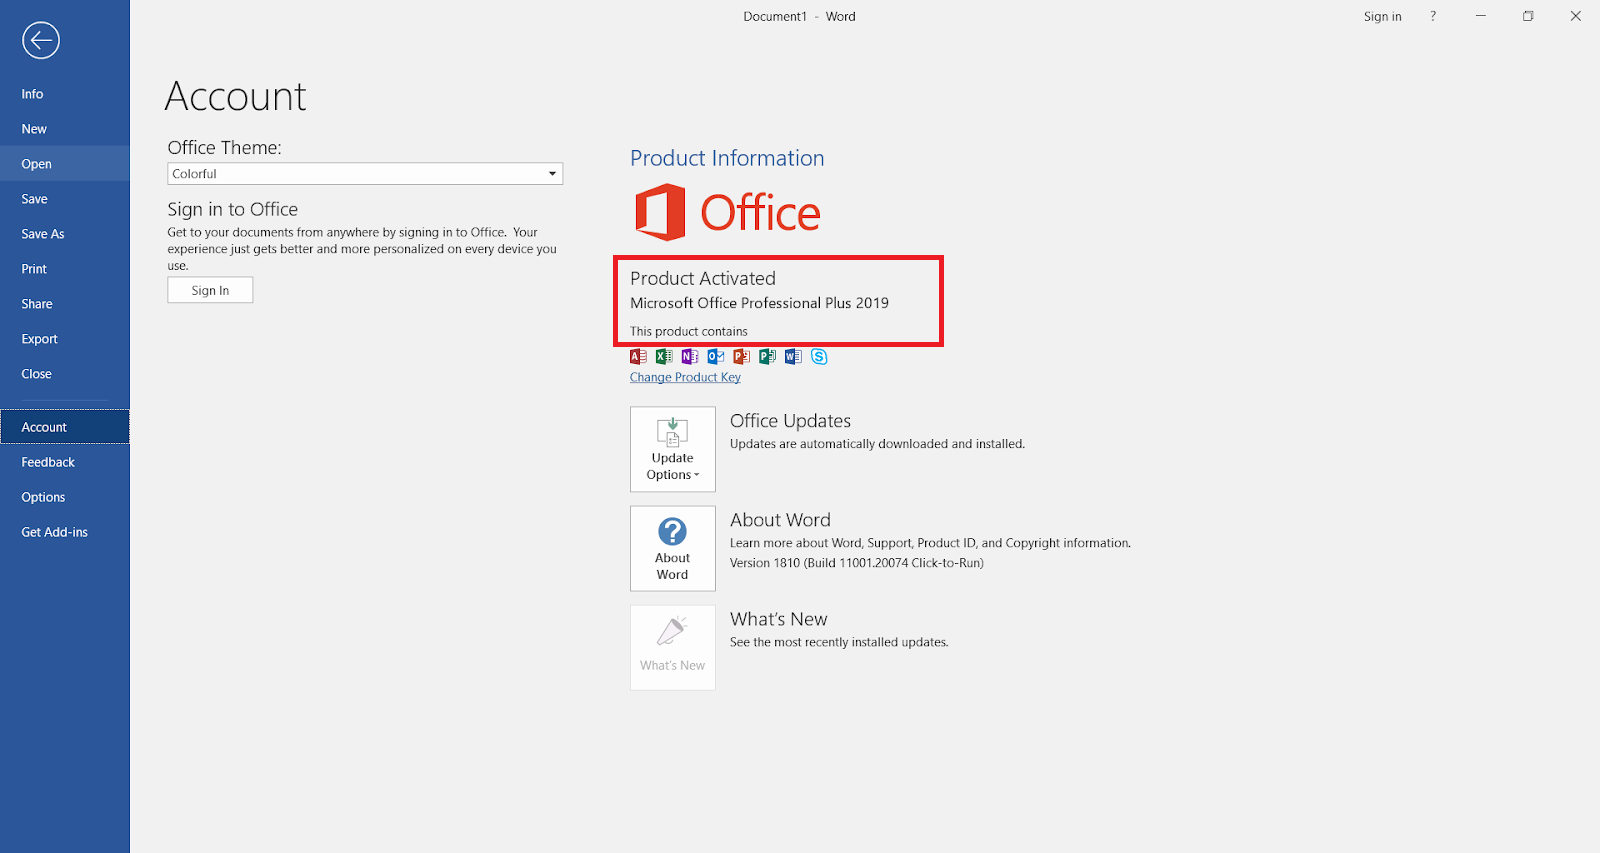 Microsoft Office 2019 is activated